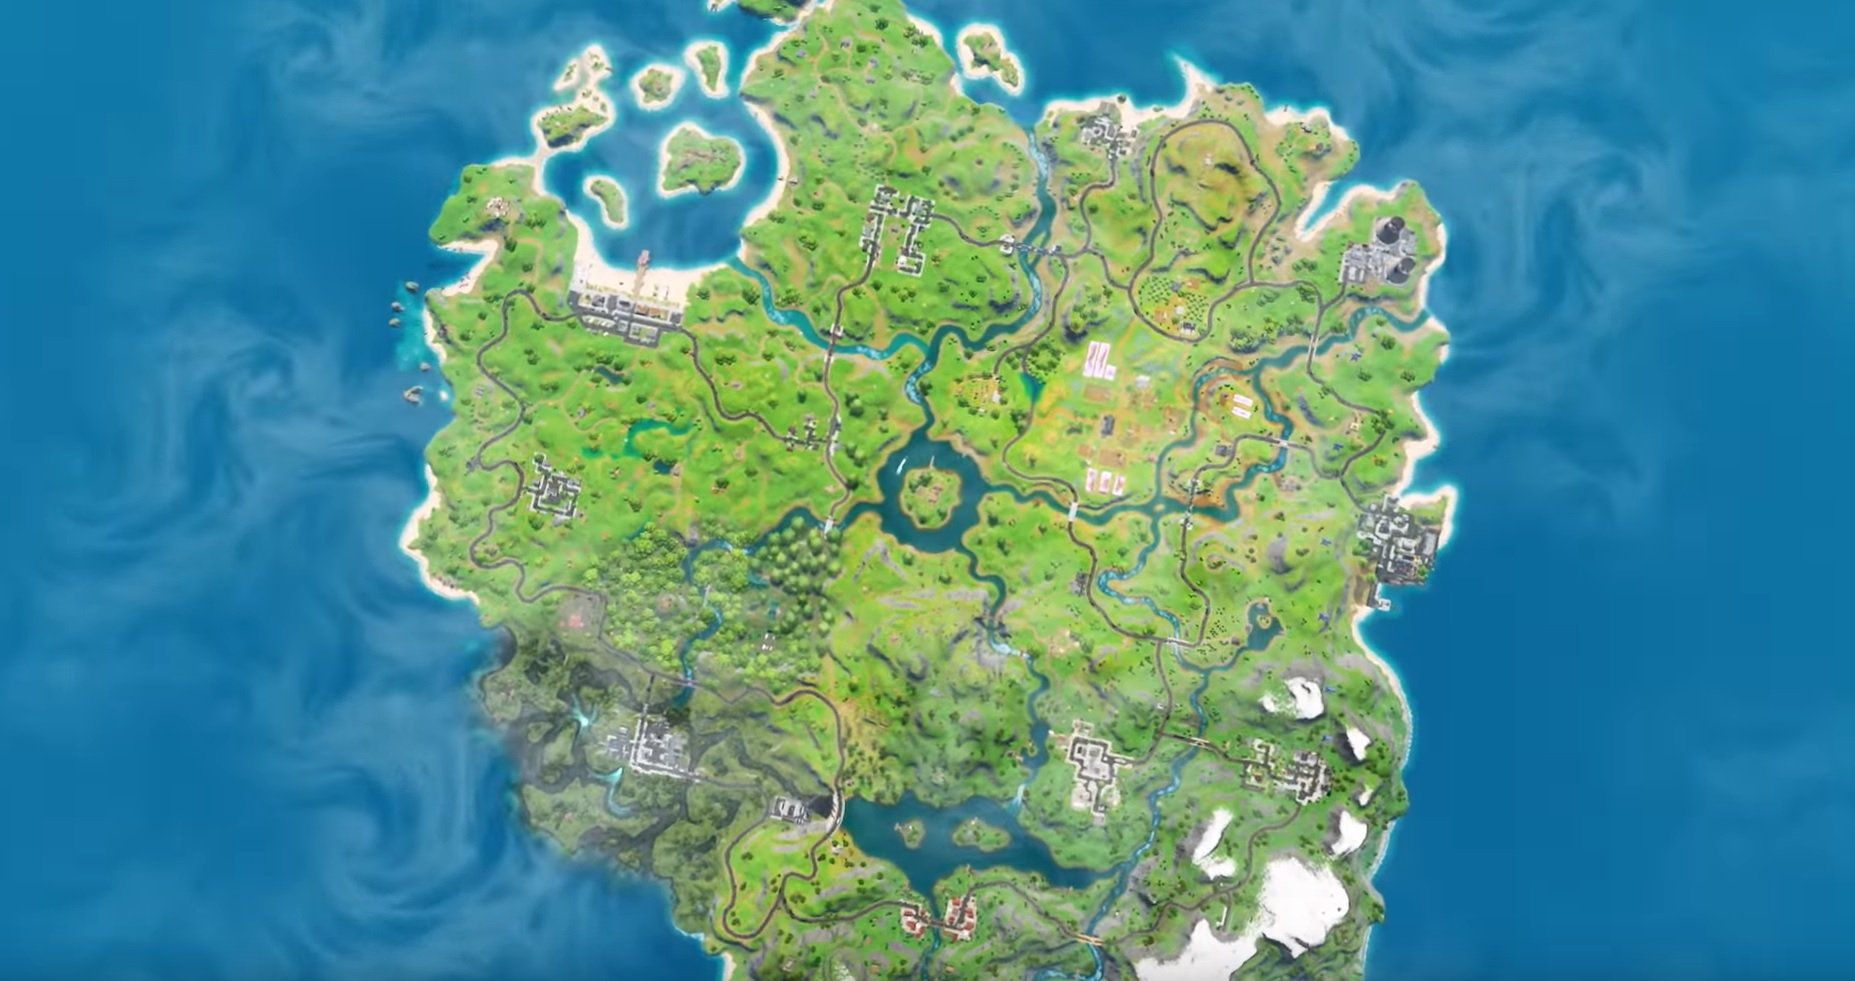 Fortnite Came Back Overhauls Its Entire Map As Chapter 2 Begins Fortnite Battle Royale Game Fortnite Season 11